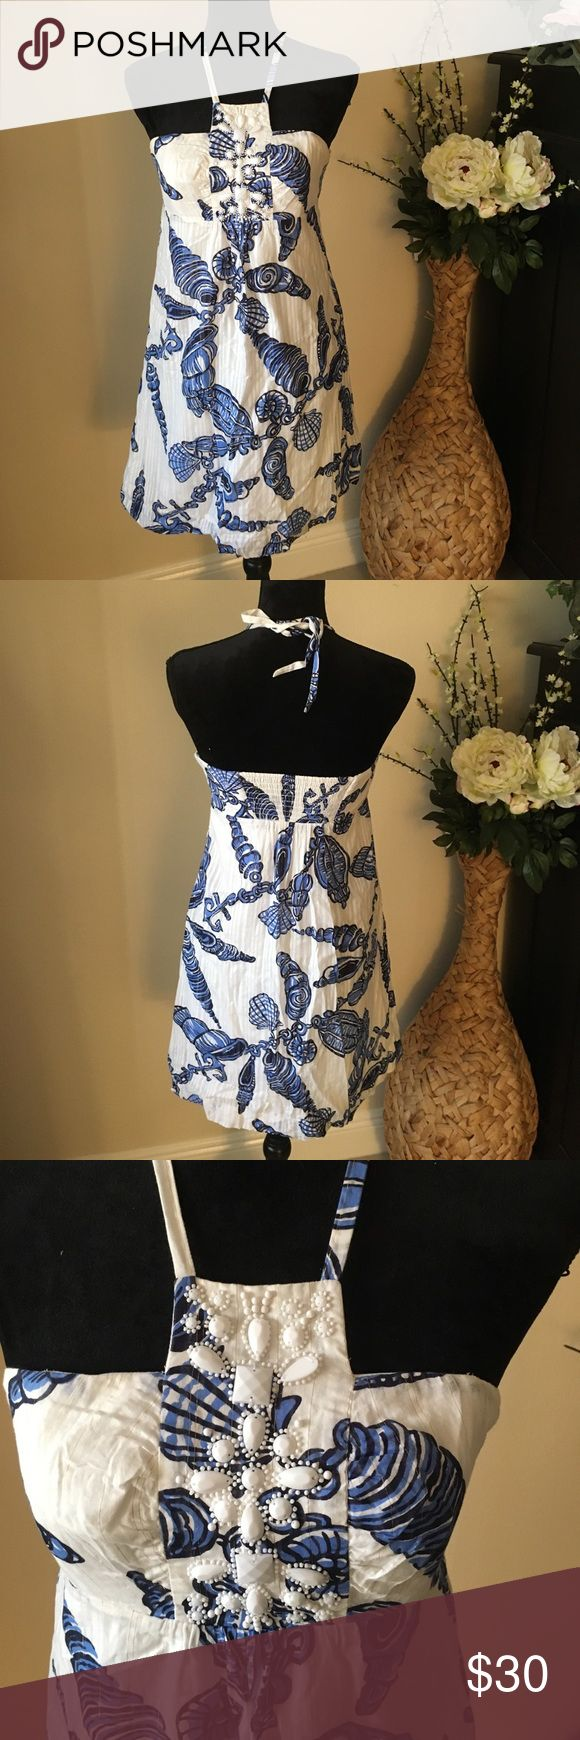 🌸Lilly Pulitzer tie neck  sea shell dress SZ 4 🌸Lilly Pulitzer tie neck  sea shell dress SZ 4... 26 inch from top of chest -- moving sale #bundleit! Lilly Pulitzer Dresses